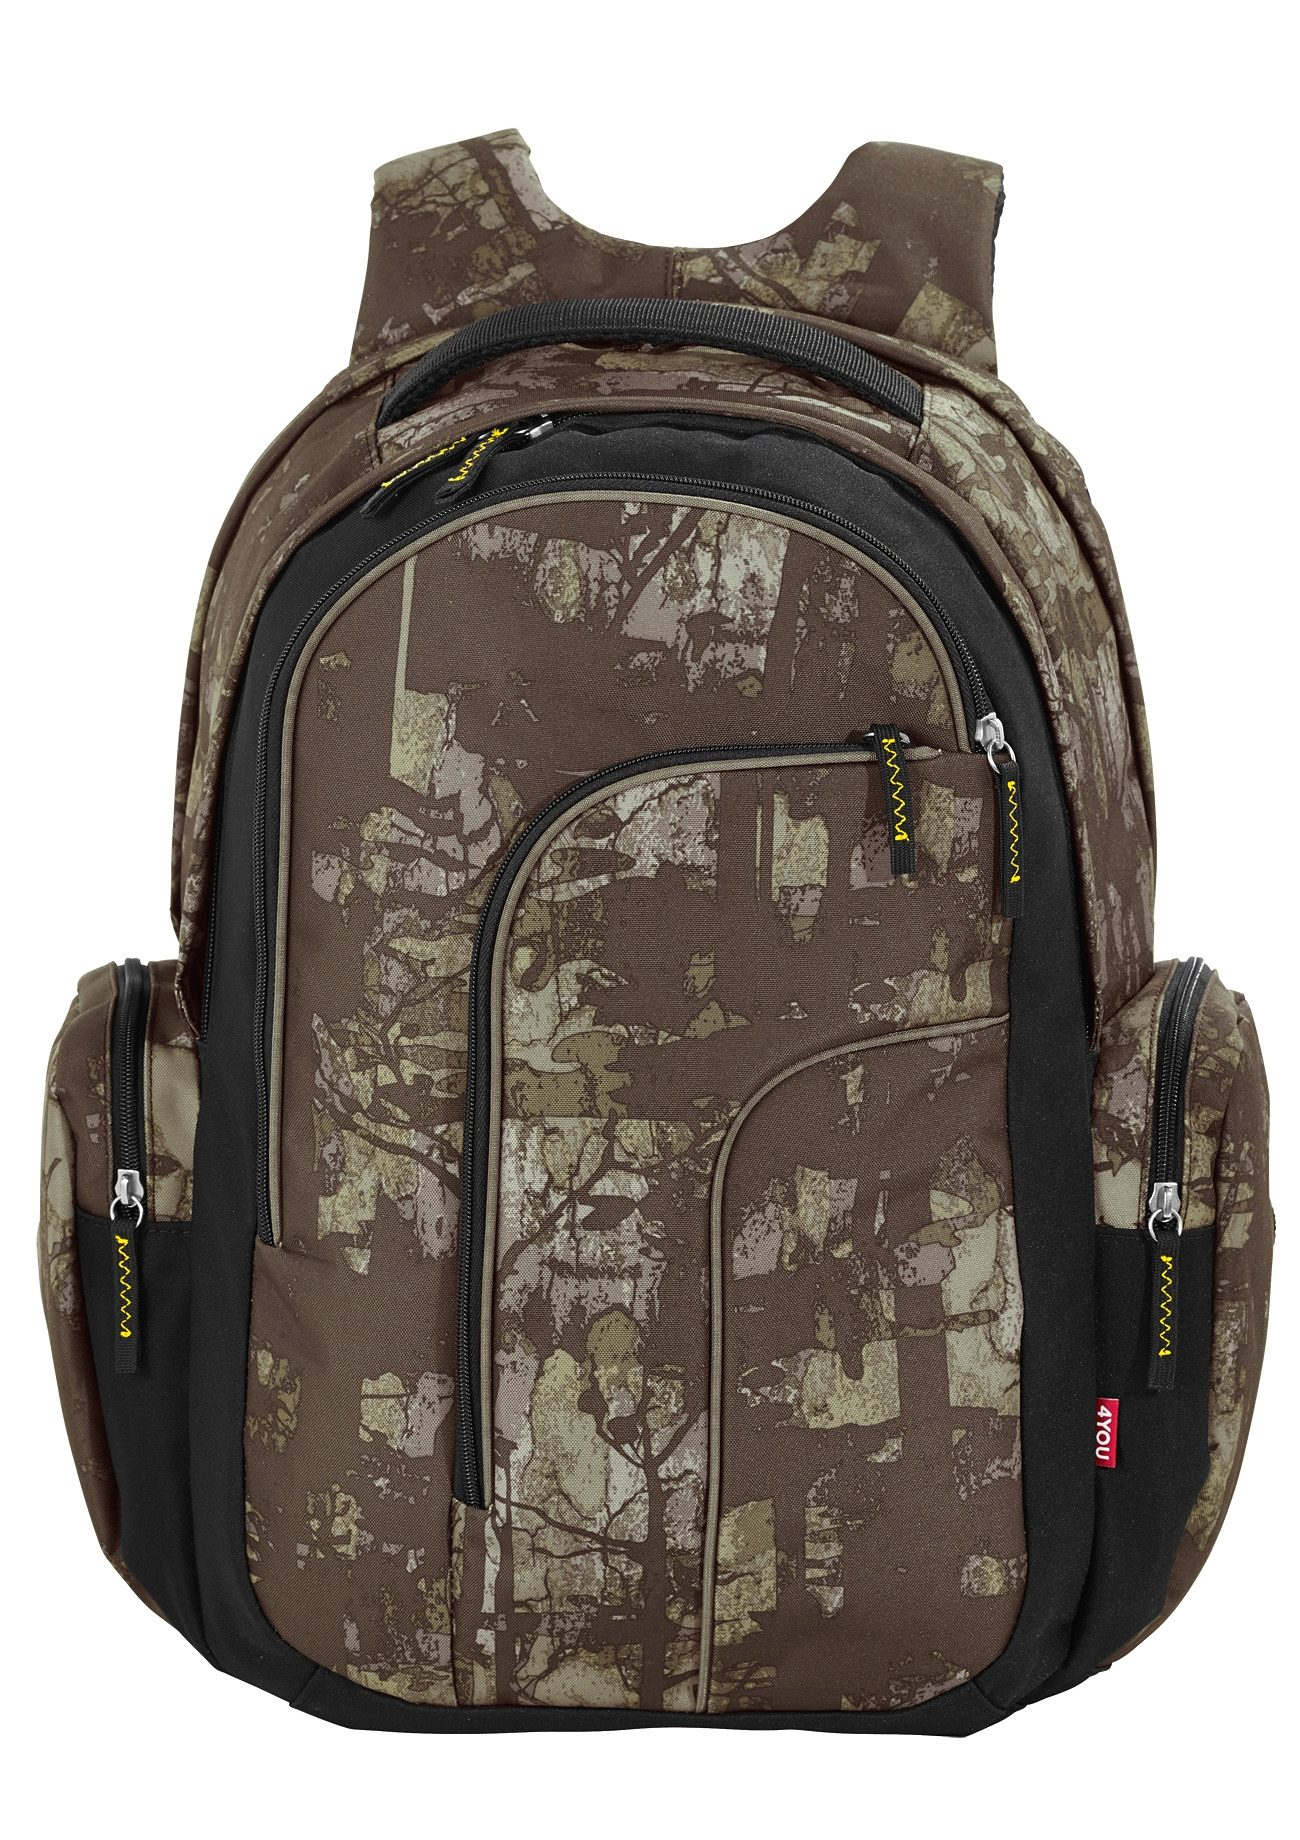 4YOU Schulrucksack mit Laptopfach, Camou Wood, »Move«